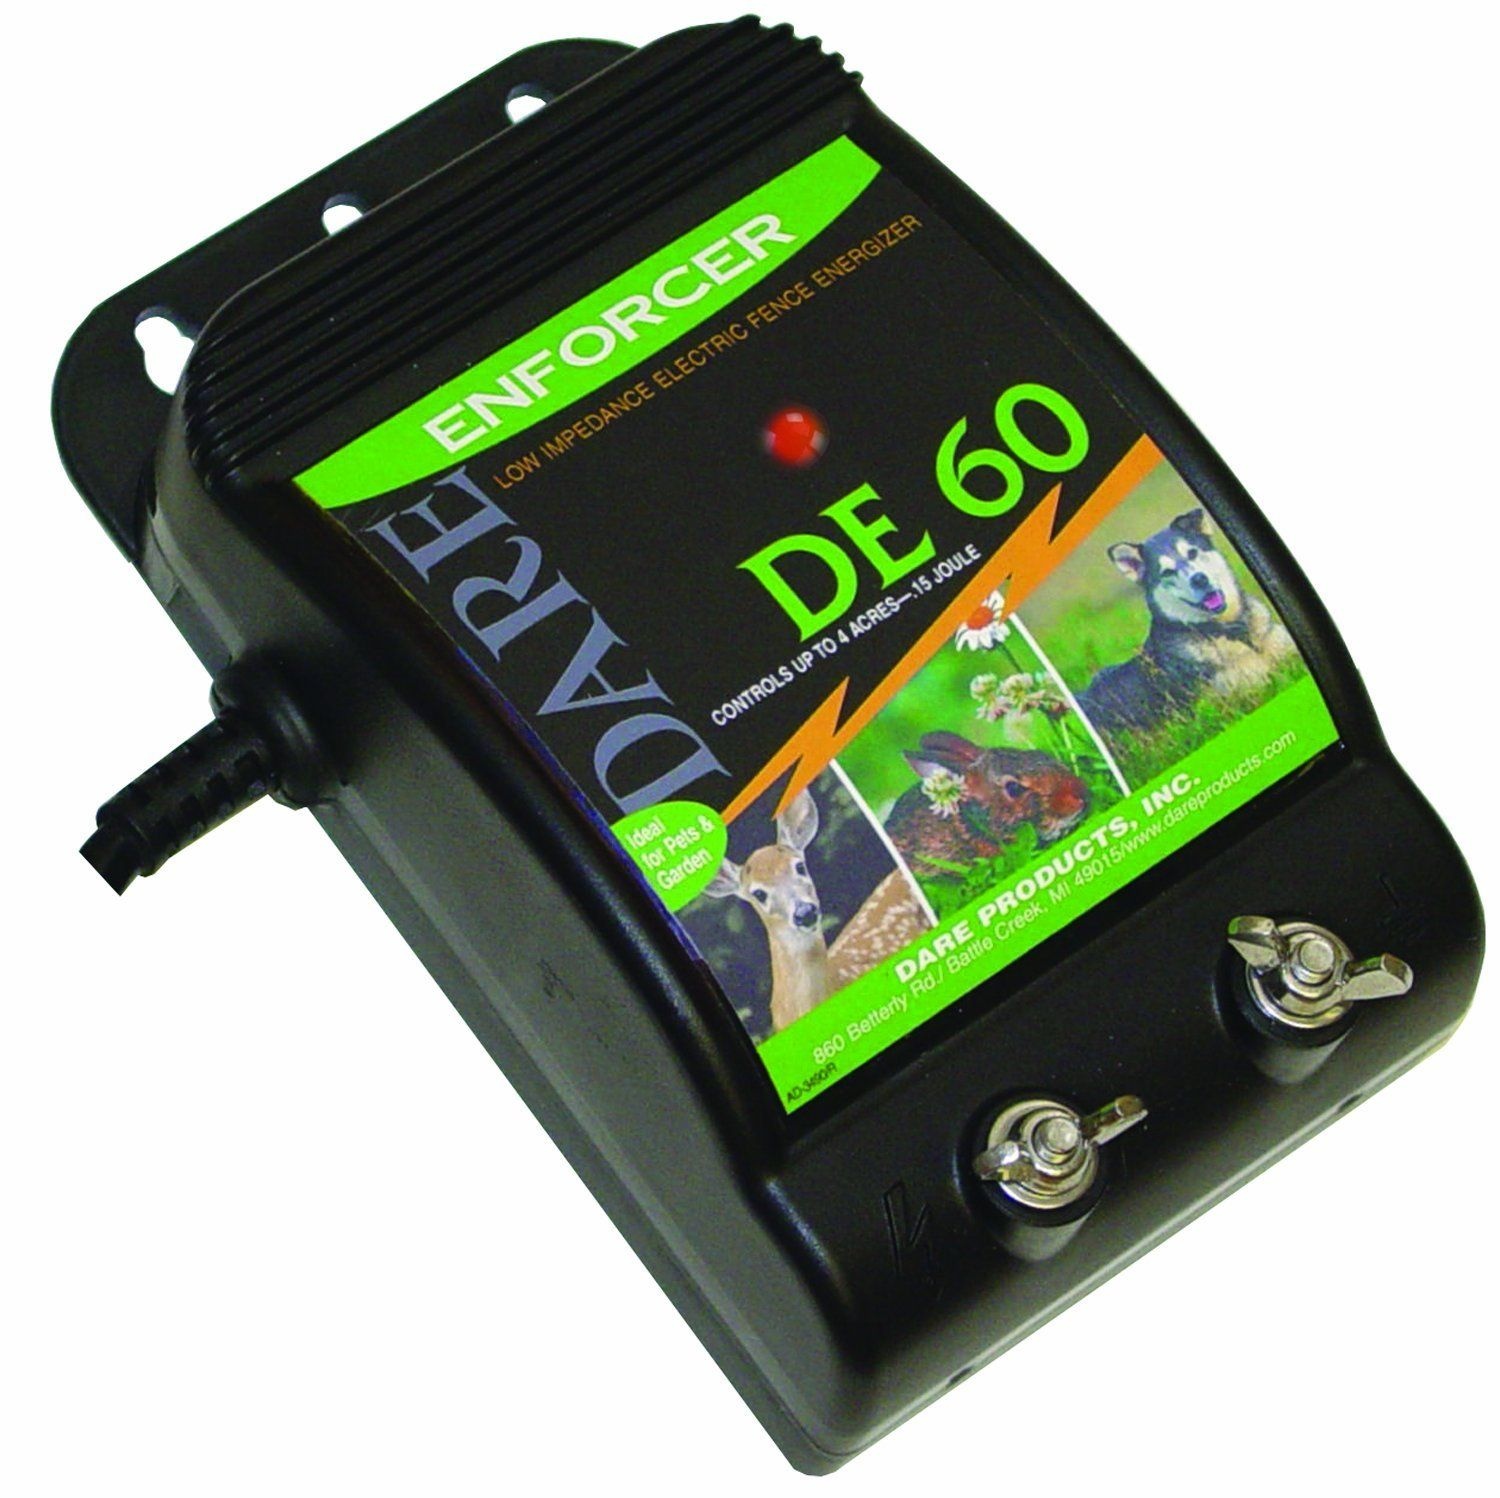 Dare Products De 60 01 Joule Fence Energizer Check Out This Electrical Control Wiring Training Great Image Dog And Behavior Aids